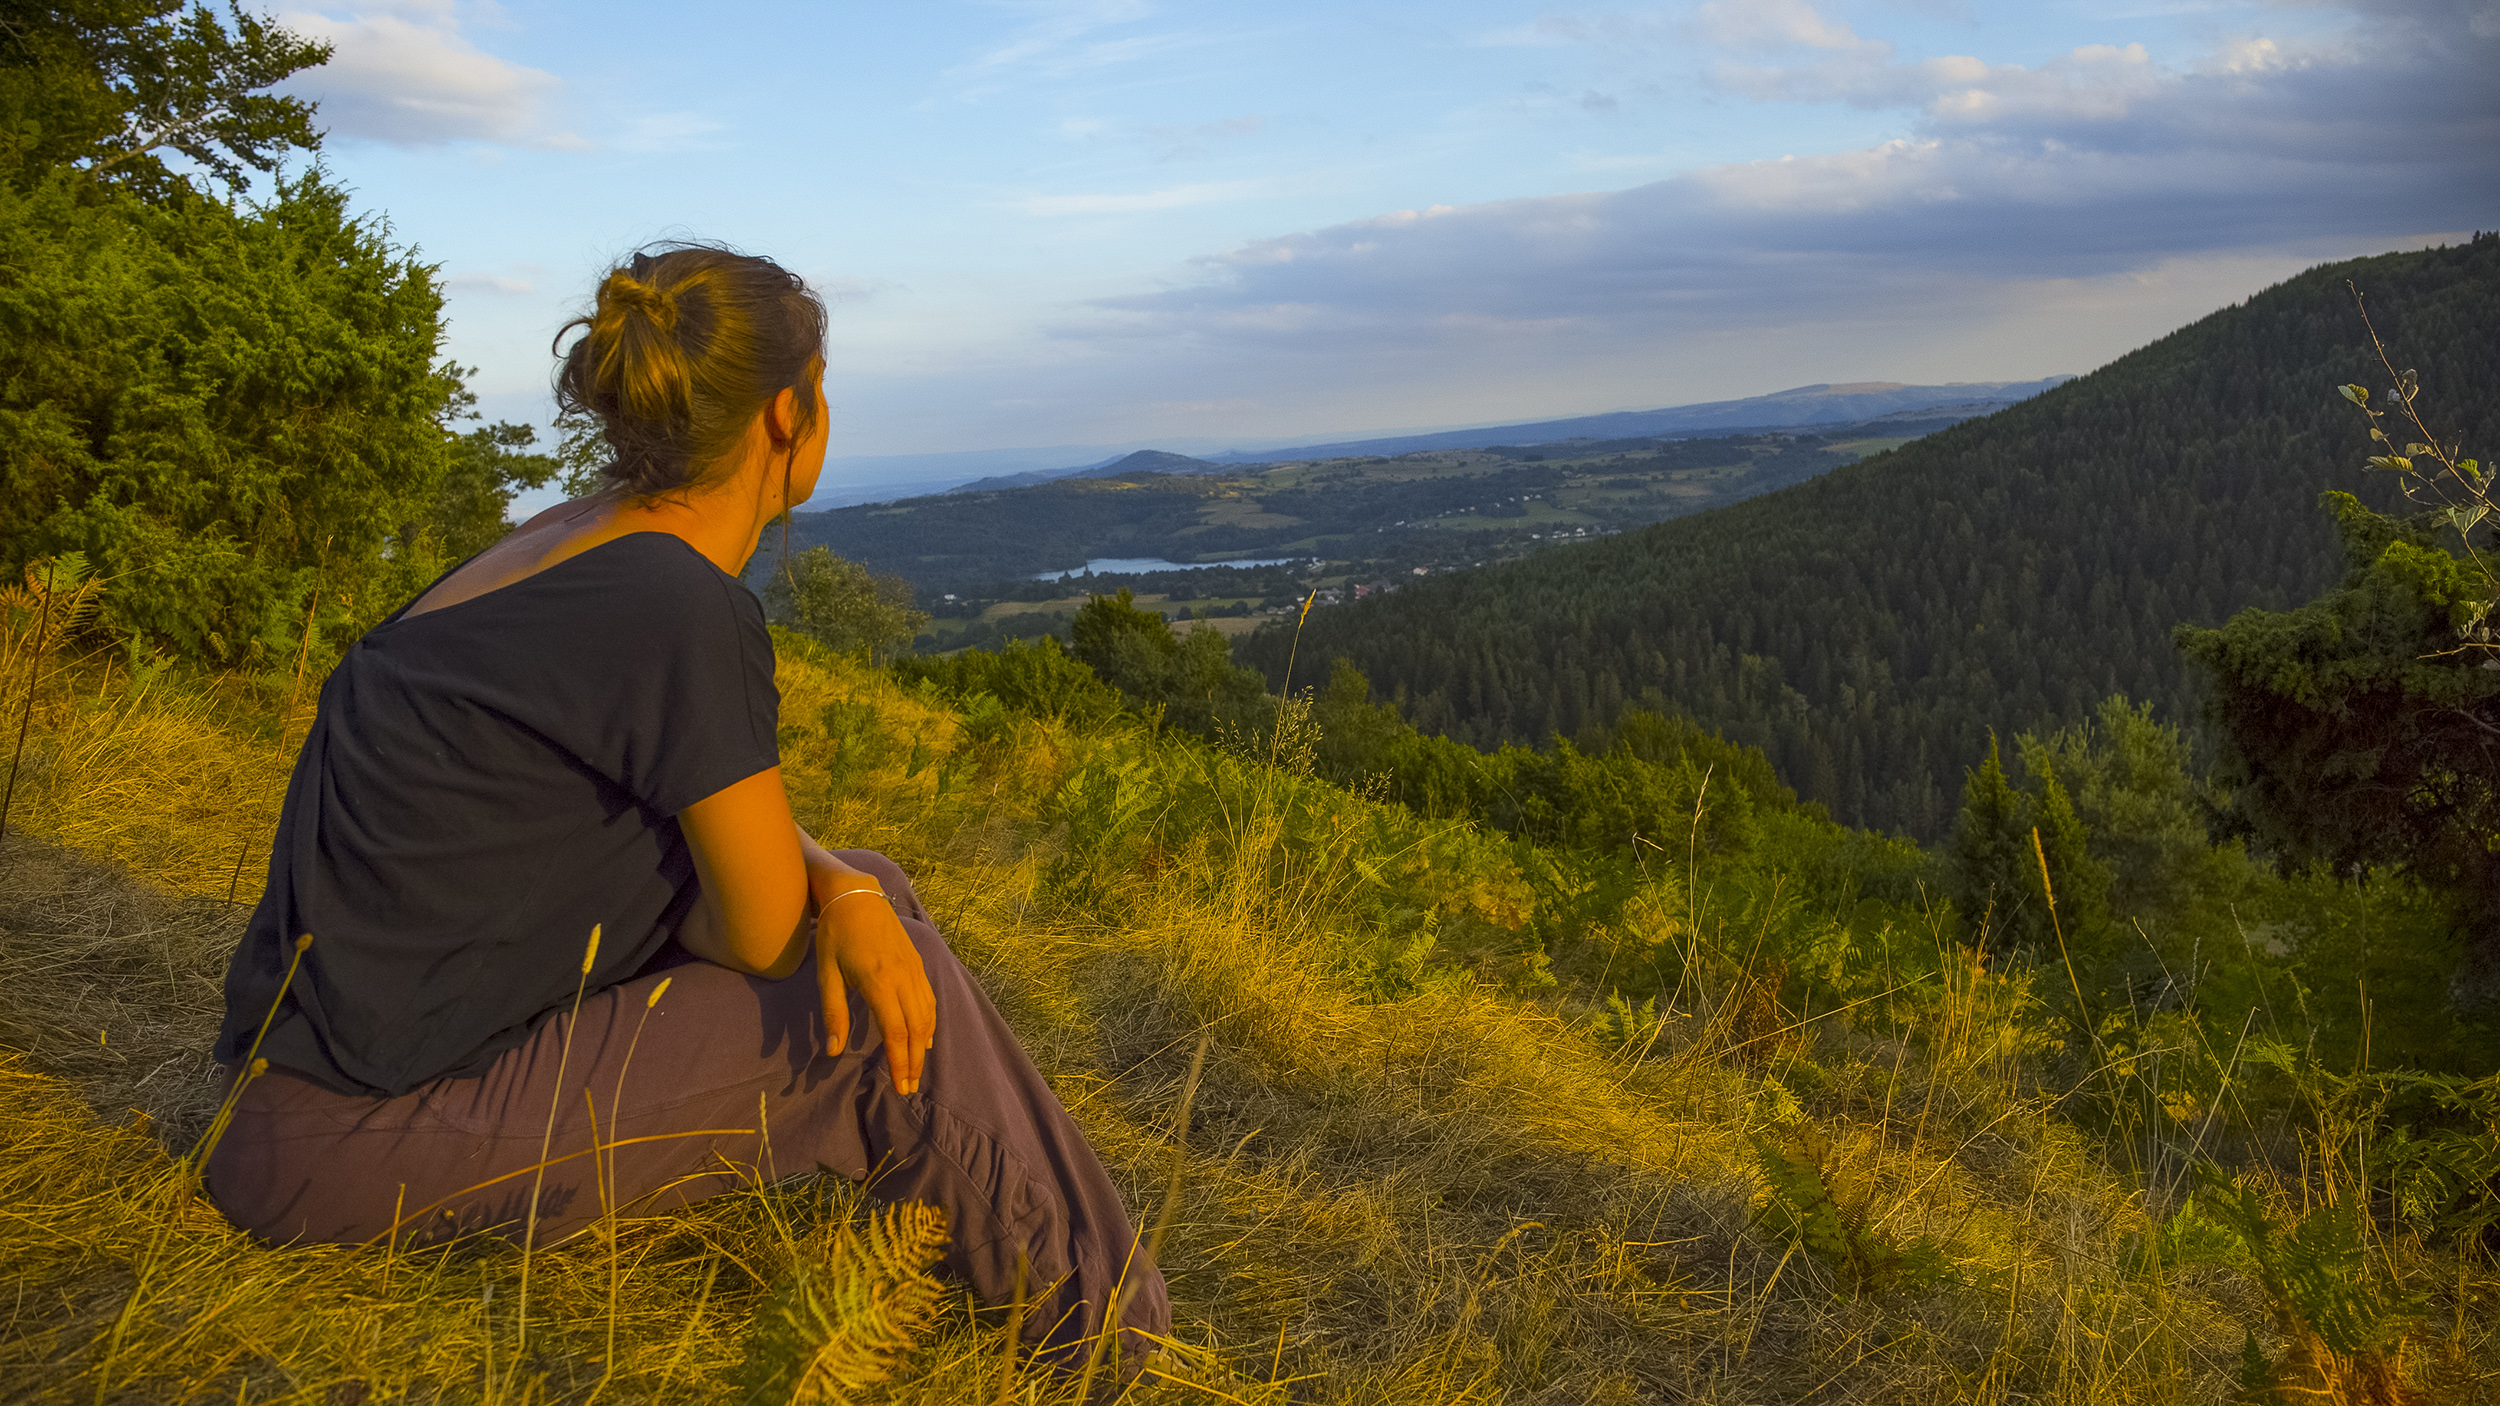 Contemplation in the heart of the Parc Naturel Régional des Volcans d'Auvergne - CANOPEE©